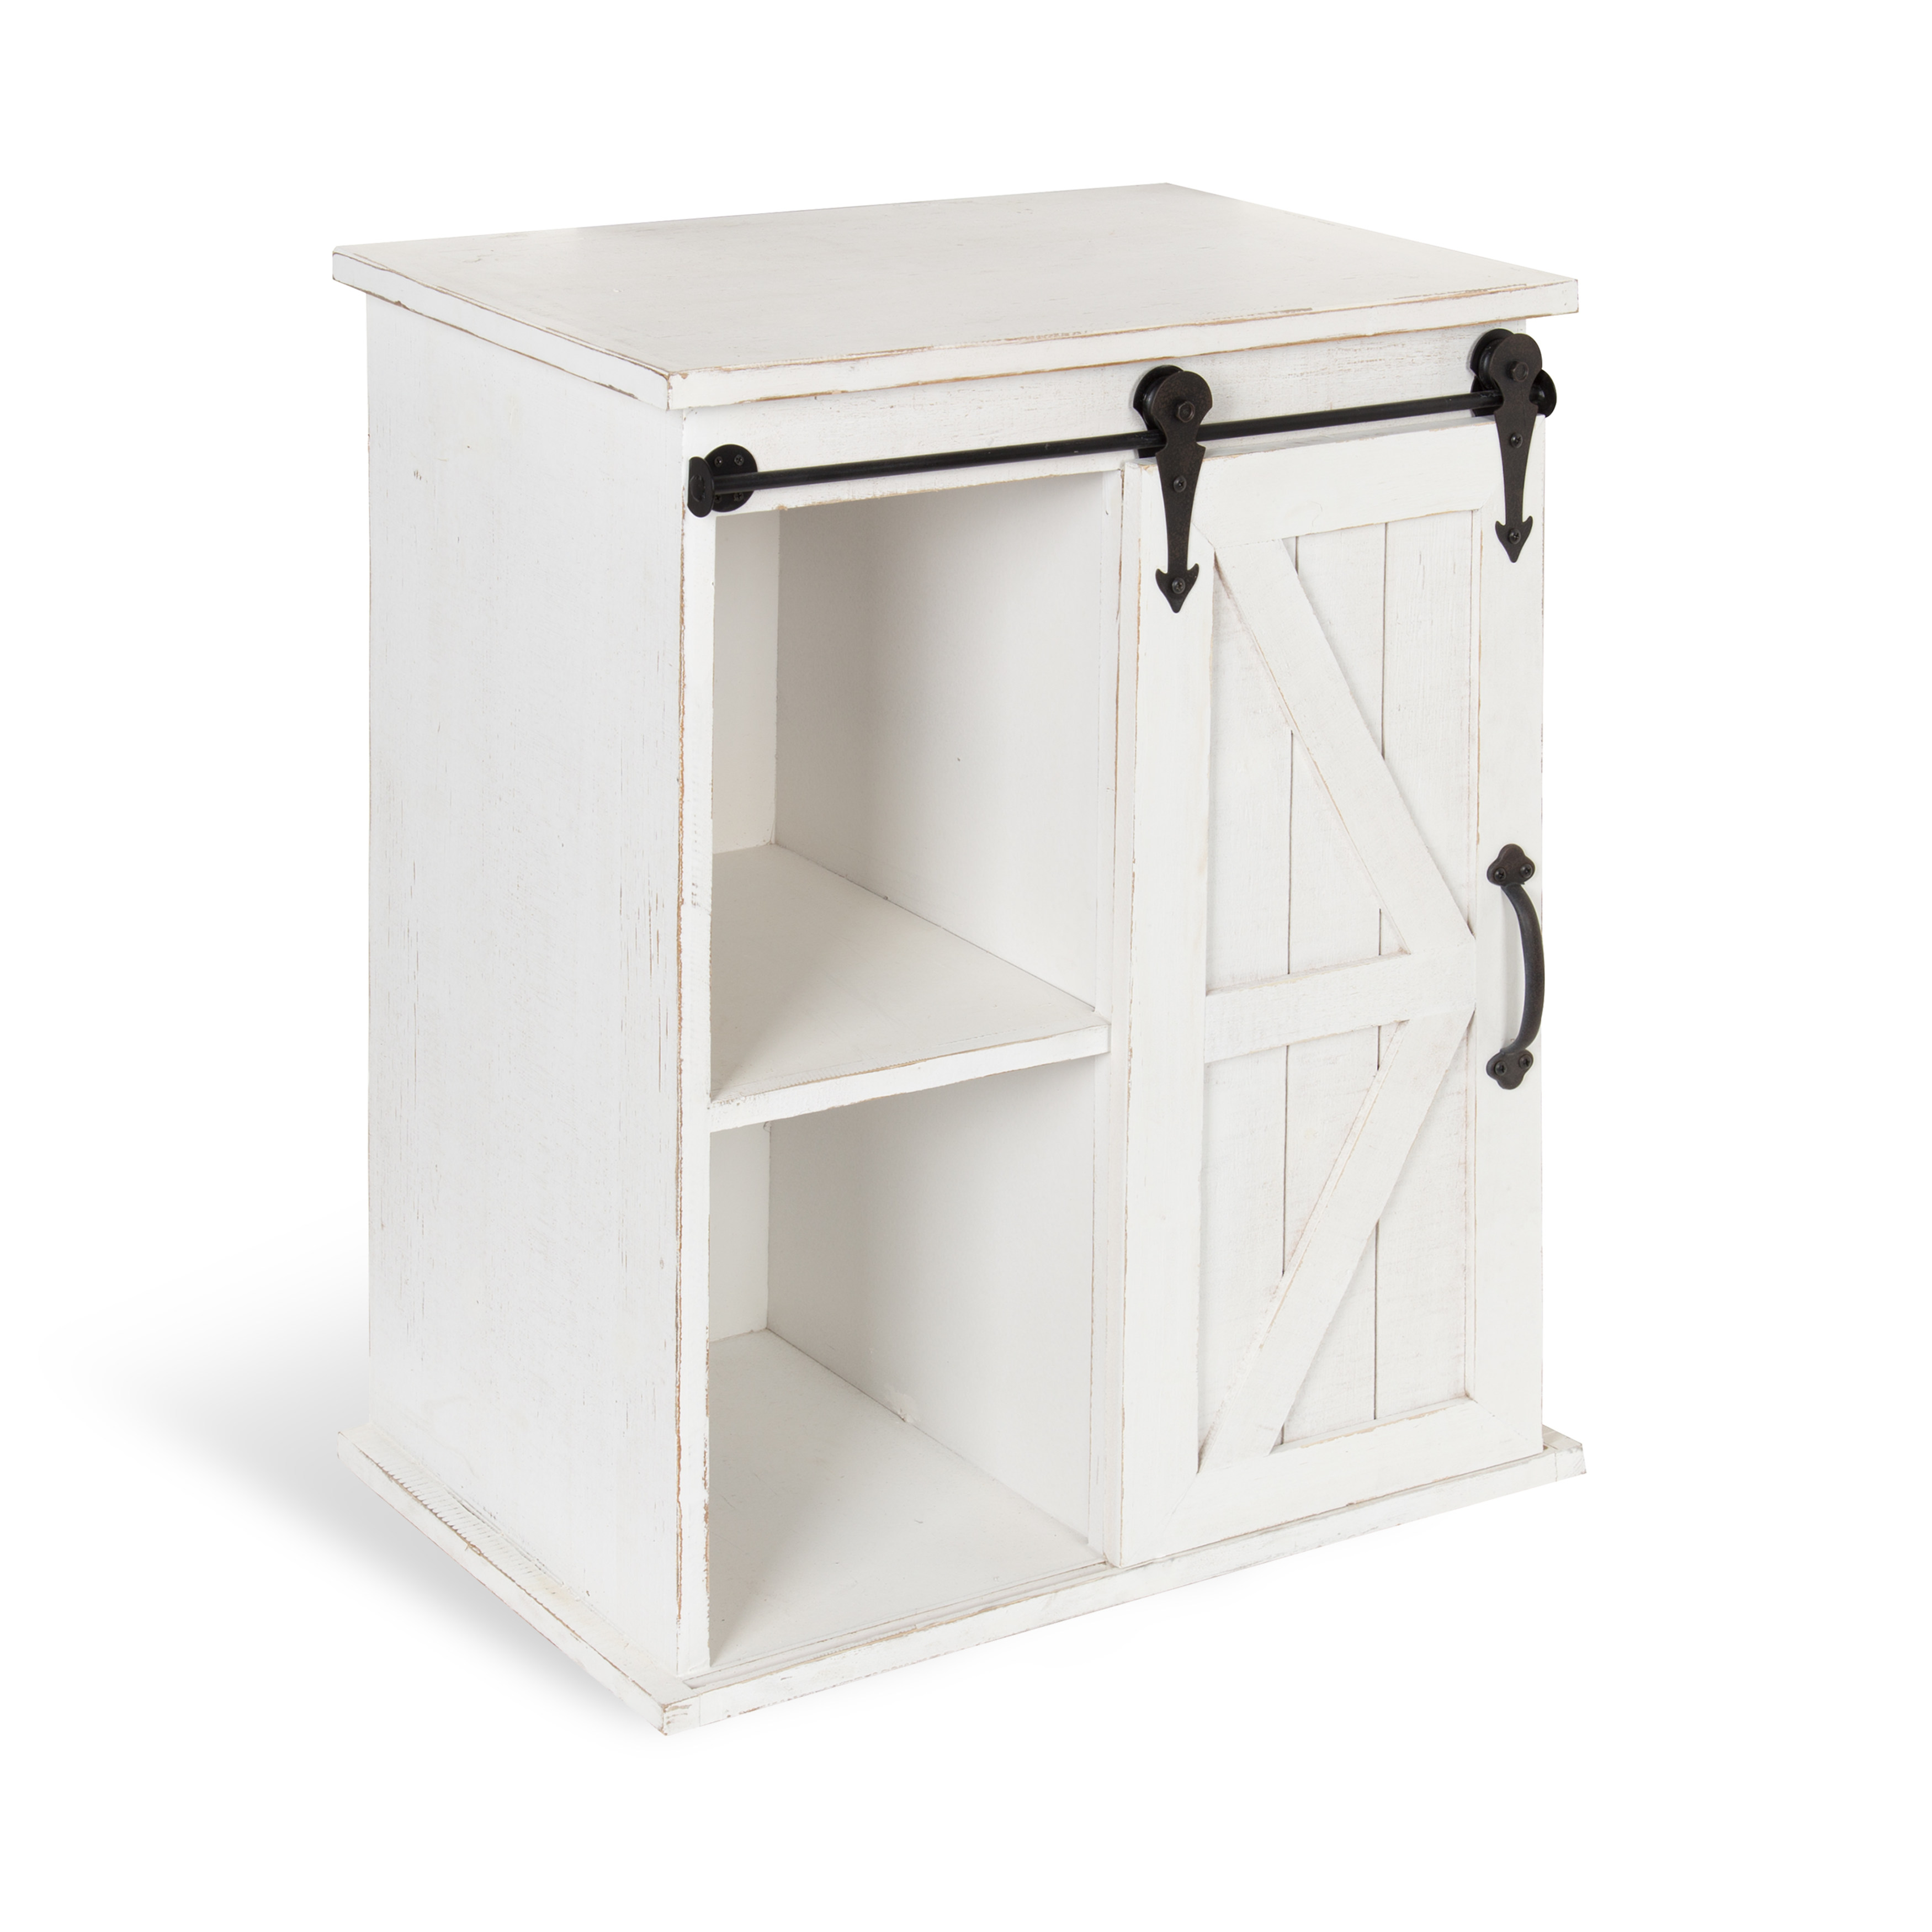 kate and laurel cates wooden freestanding storage cabinet side white accent table with sliding barn door antique finish ethan allen pineapple chairs small entryway console kilim